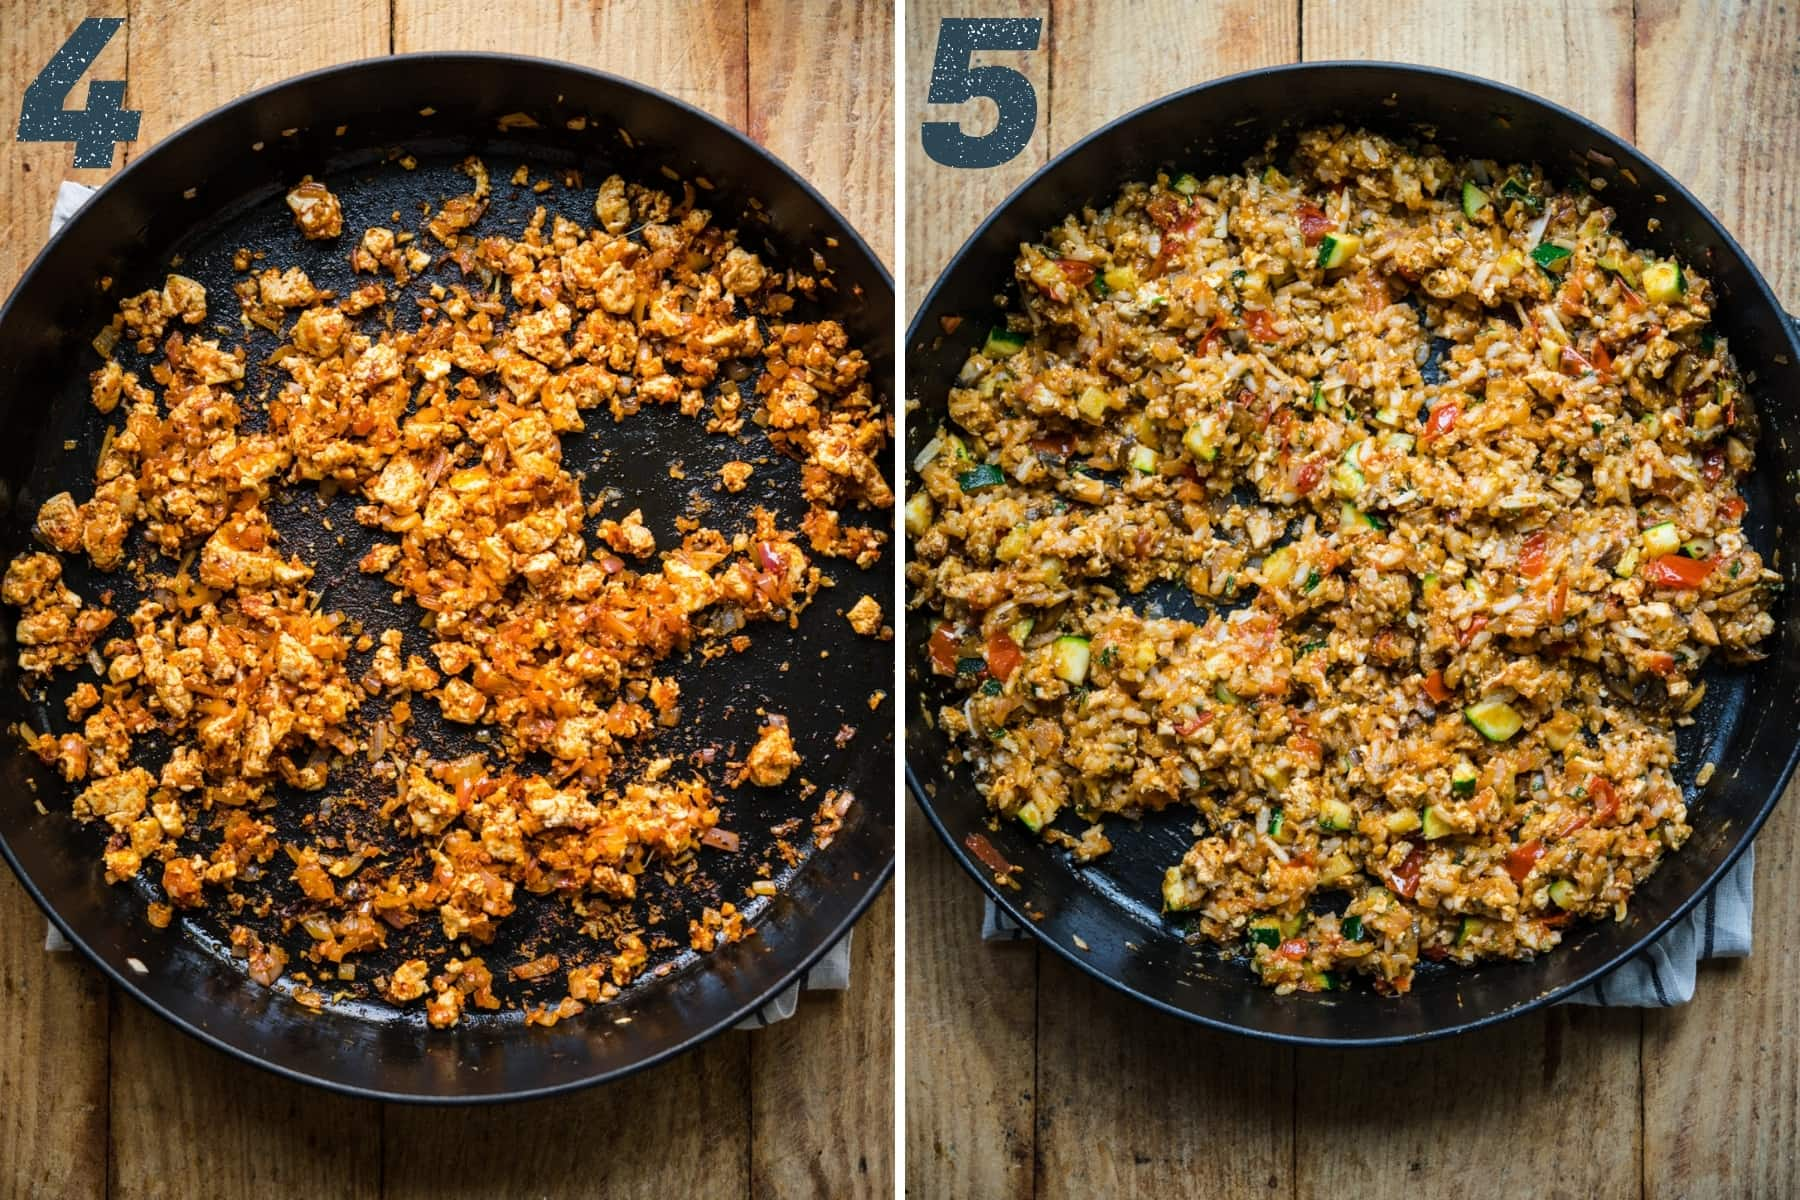 before and after adding risotto rice and vegetables to tofu filling for stuffed peppers.